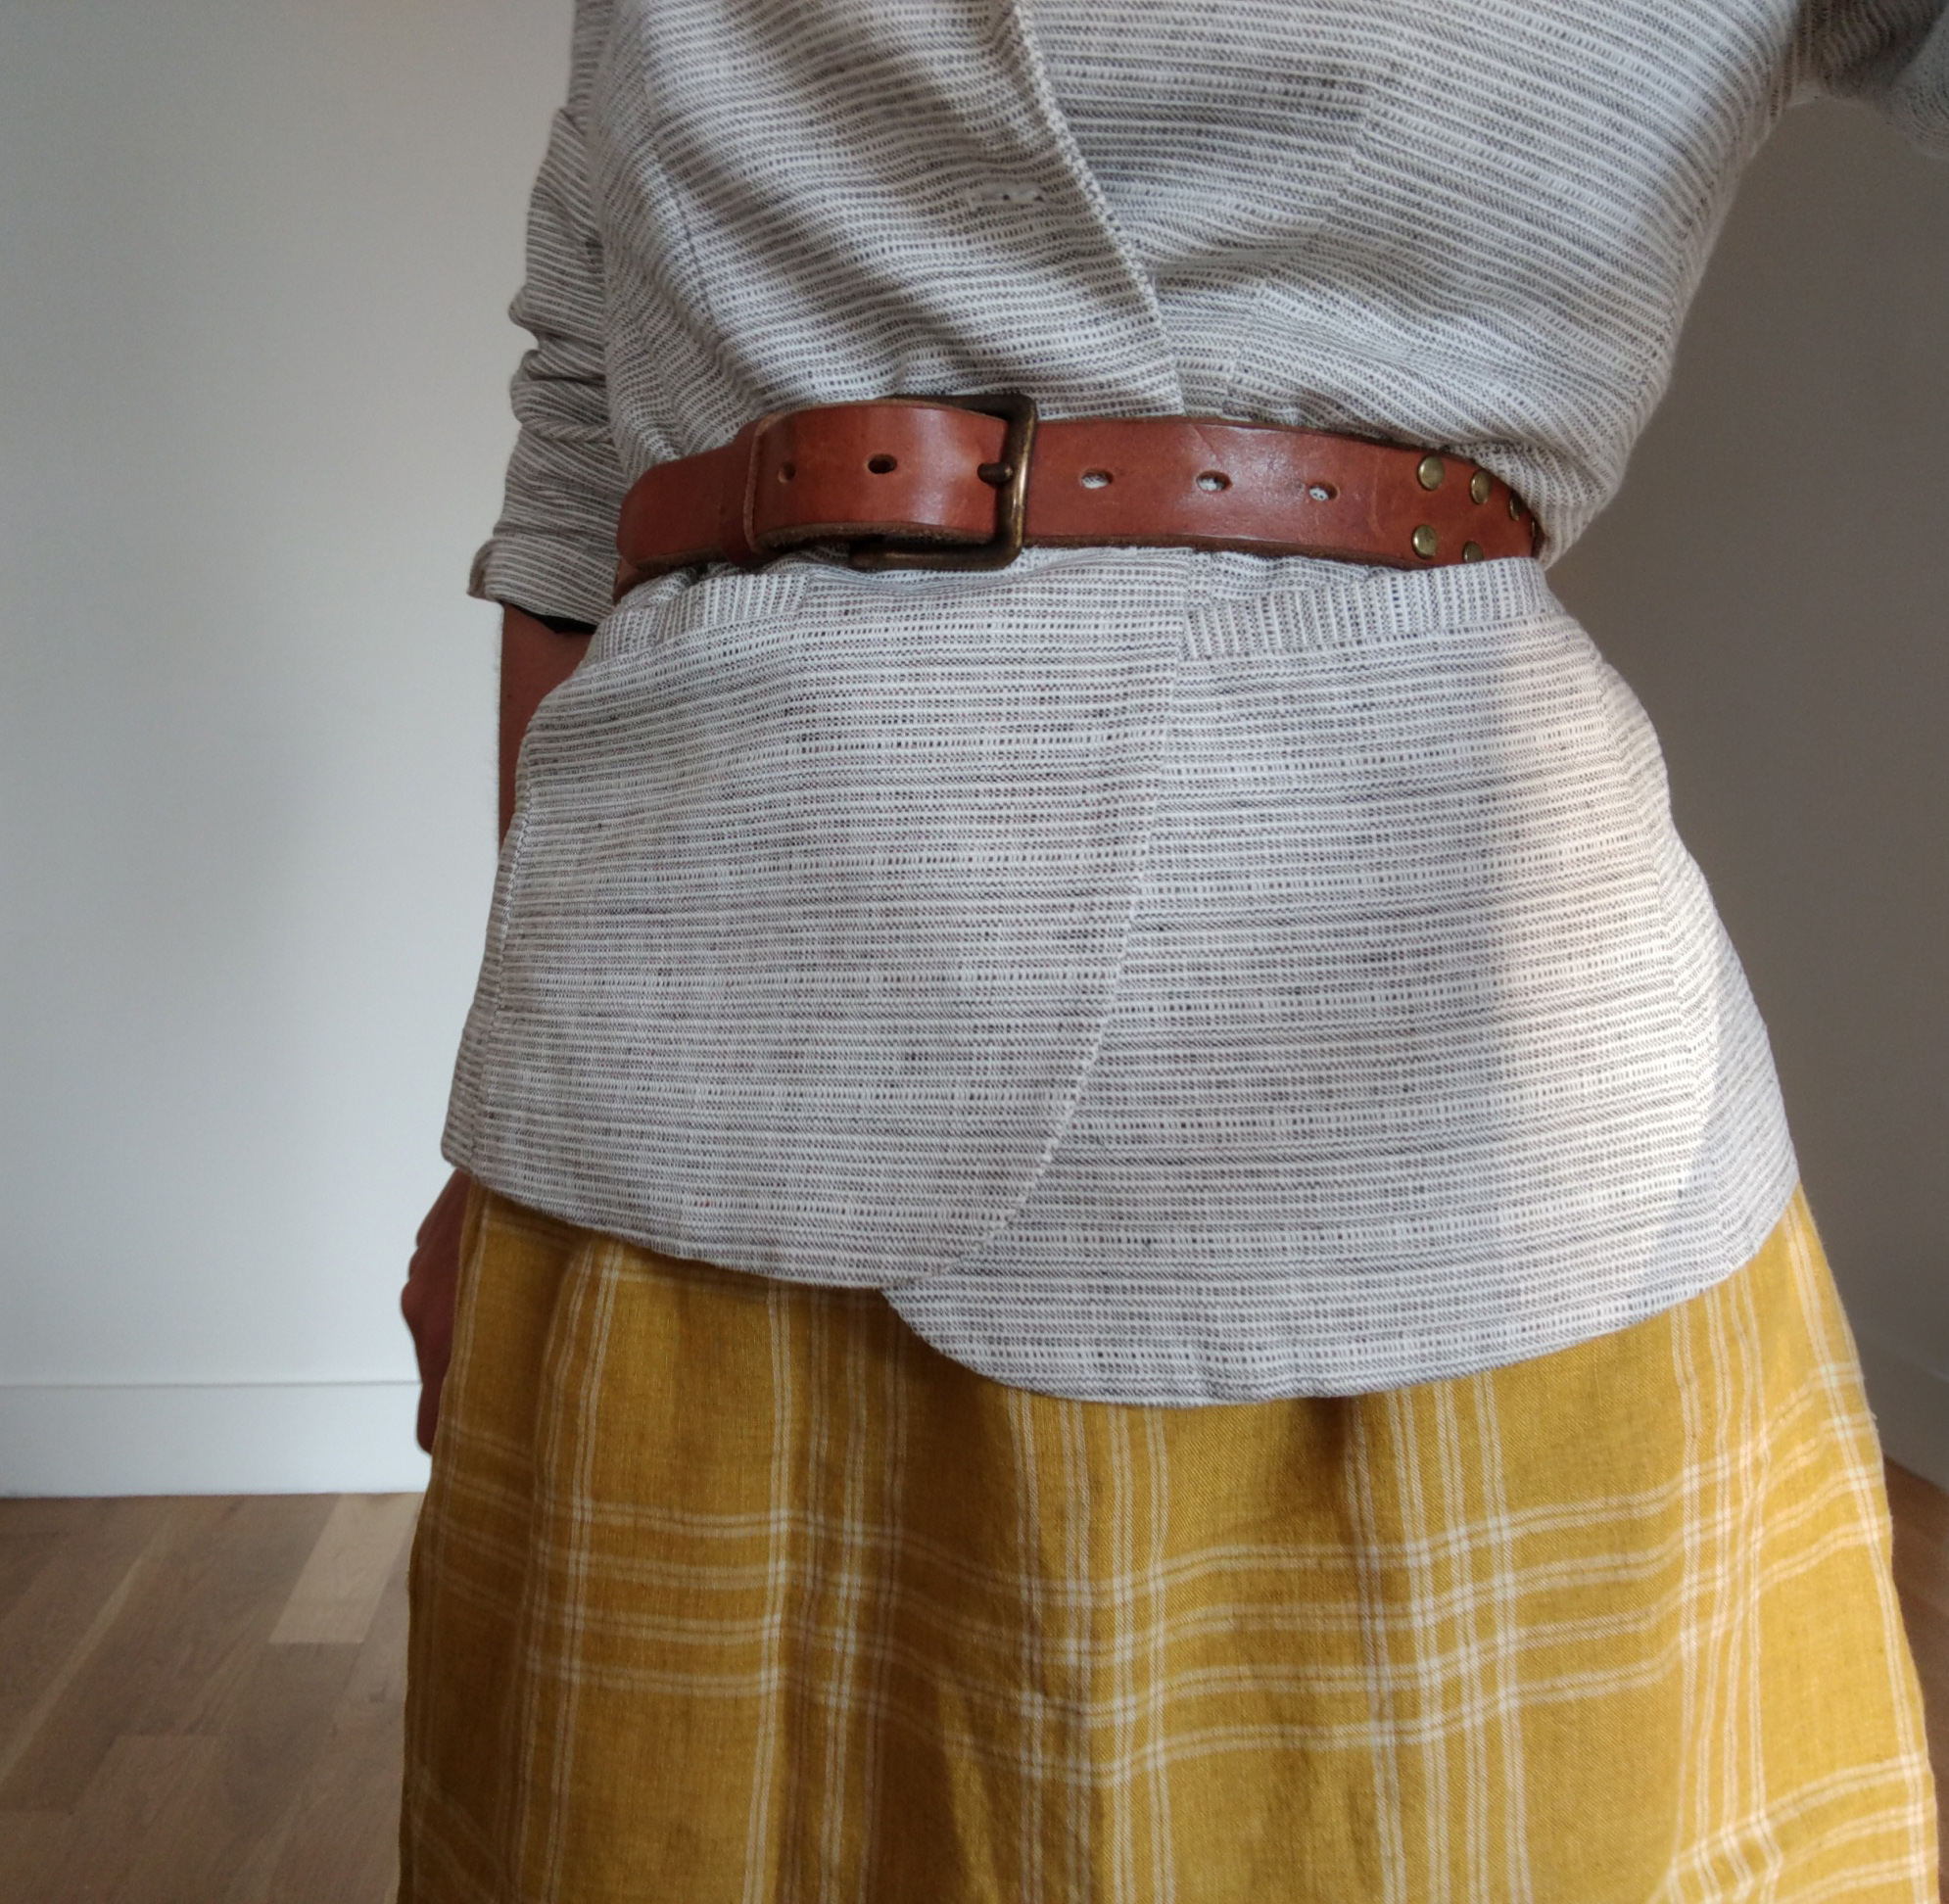 leanne luce texture mix gray melange cotton blazer with a tan leather belt and mustard yellow linen plaid skirt